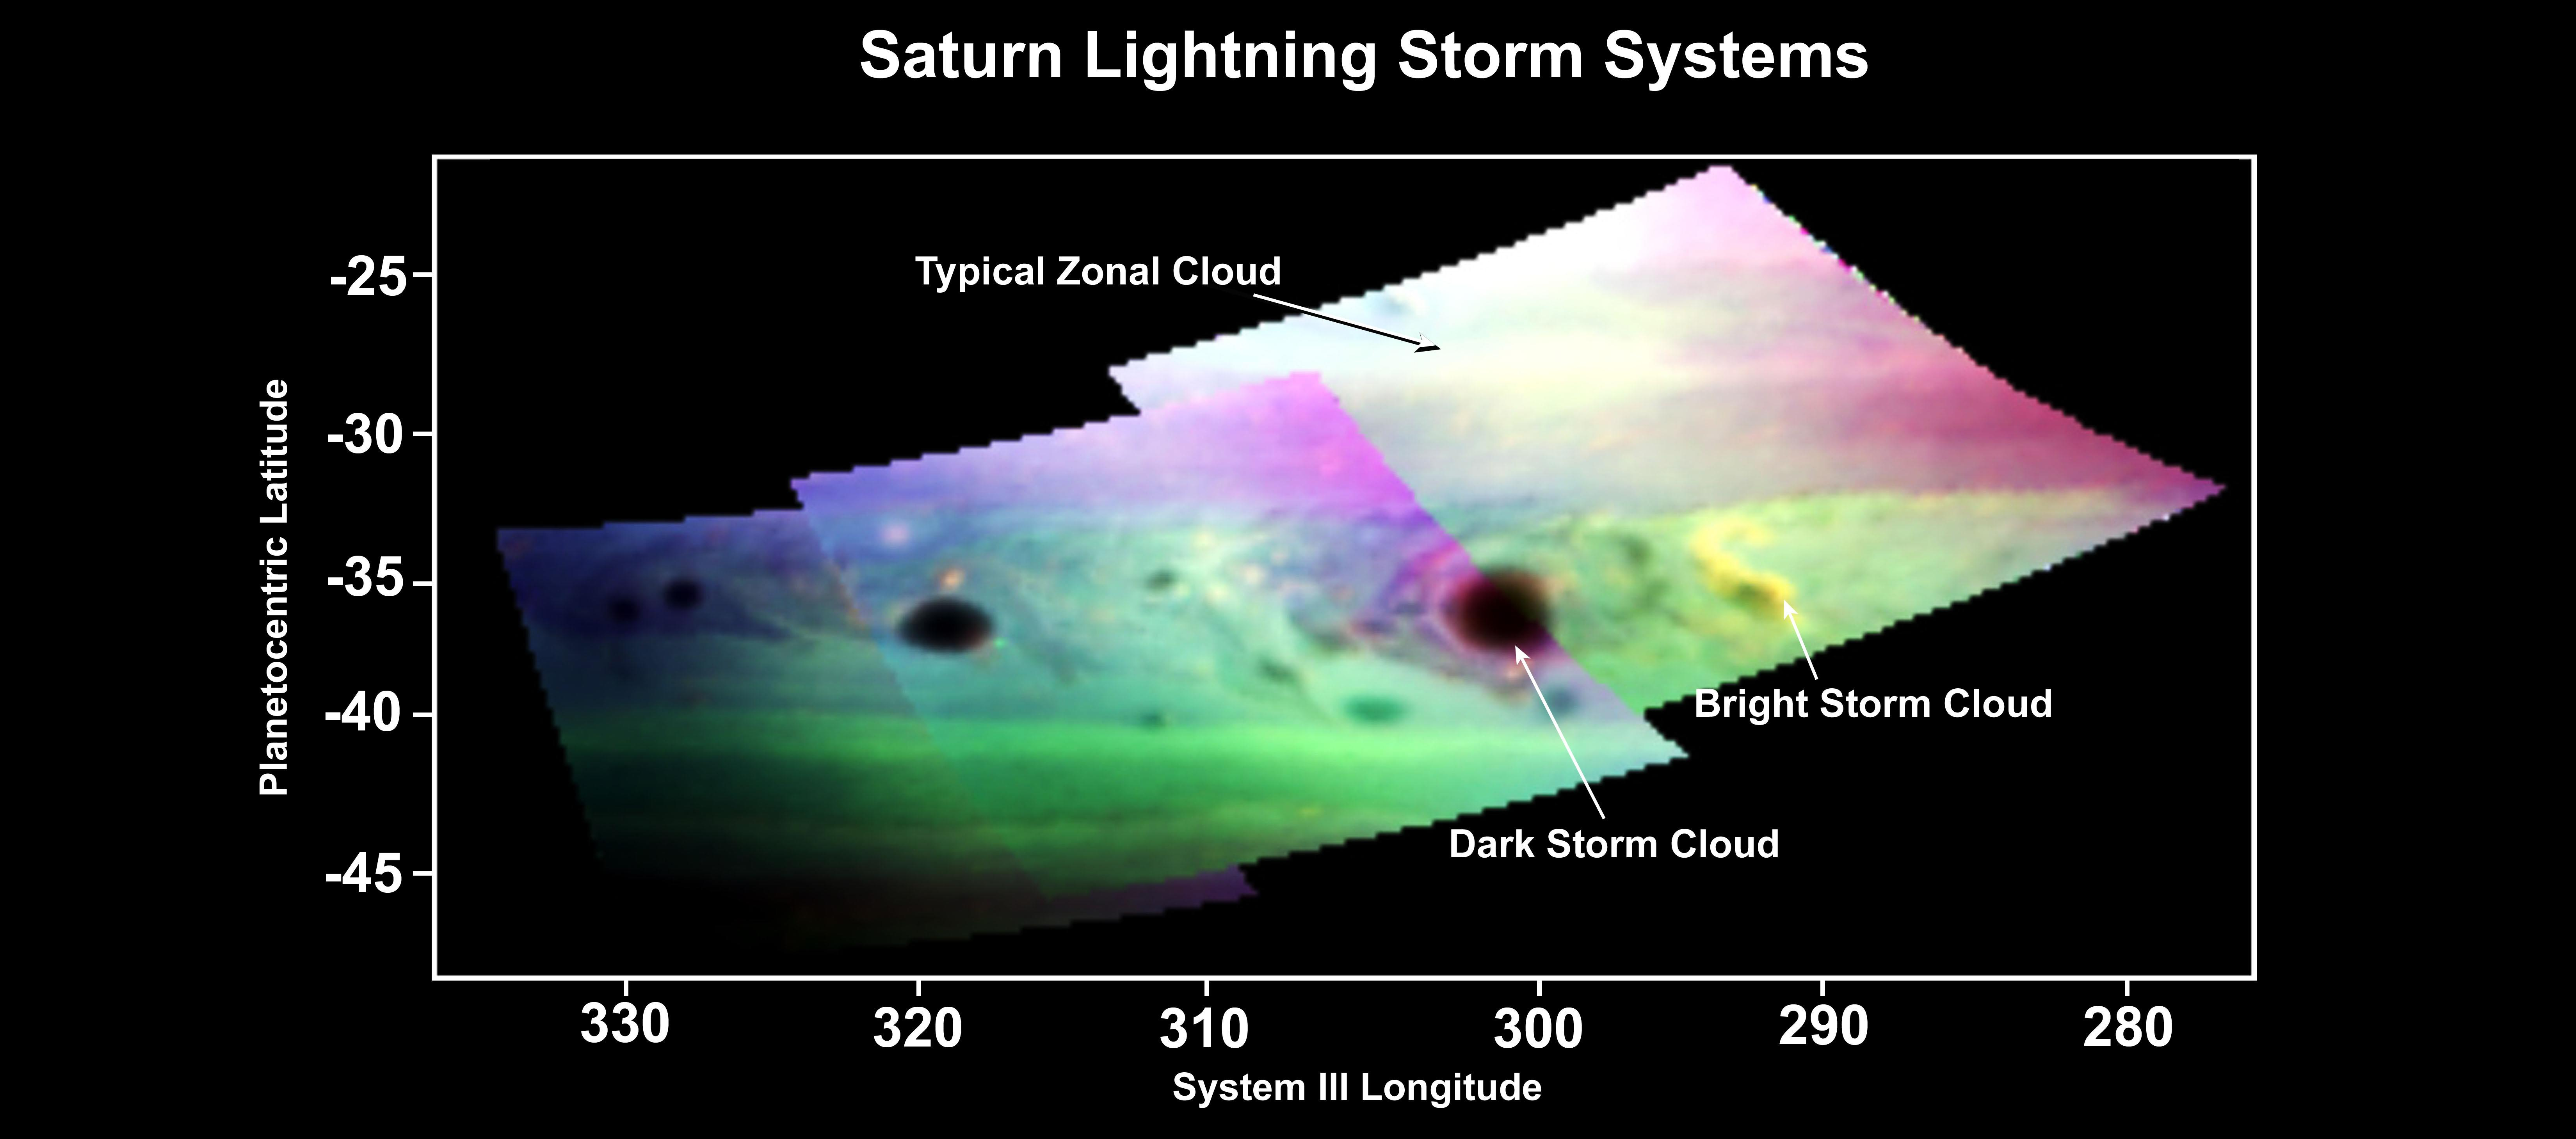 Saturn lightning storm systems